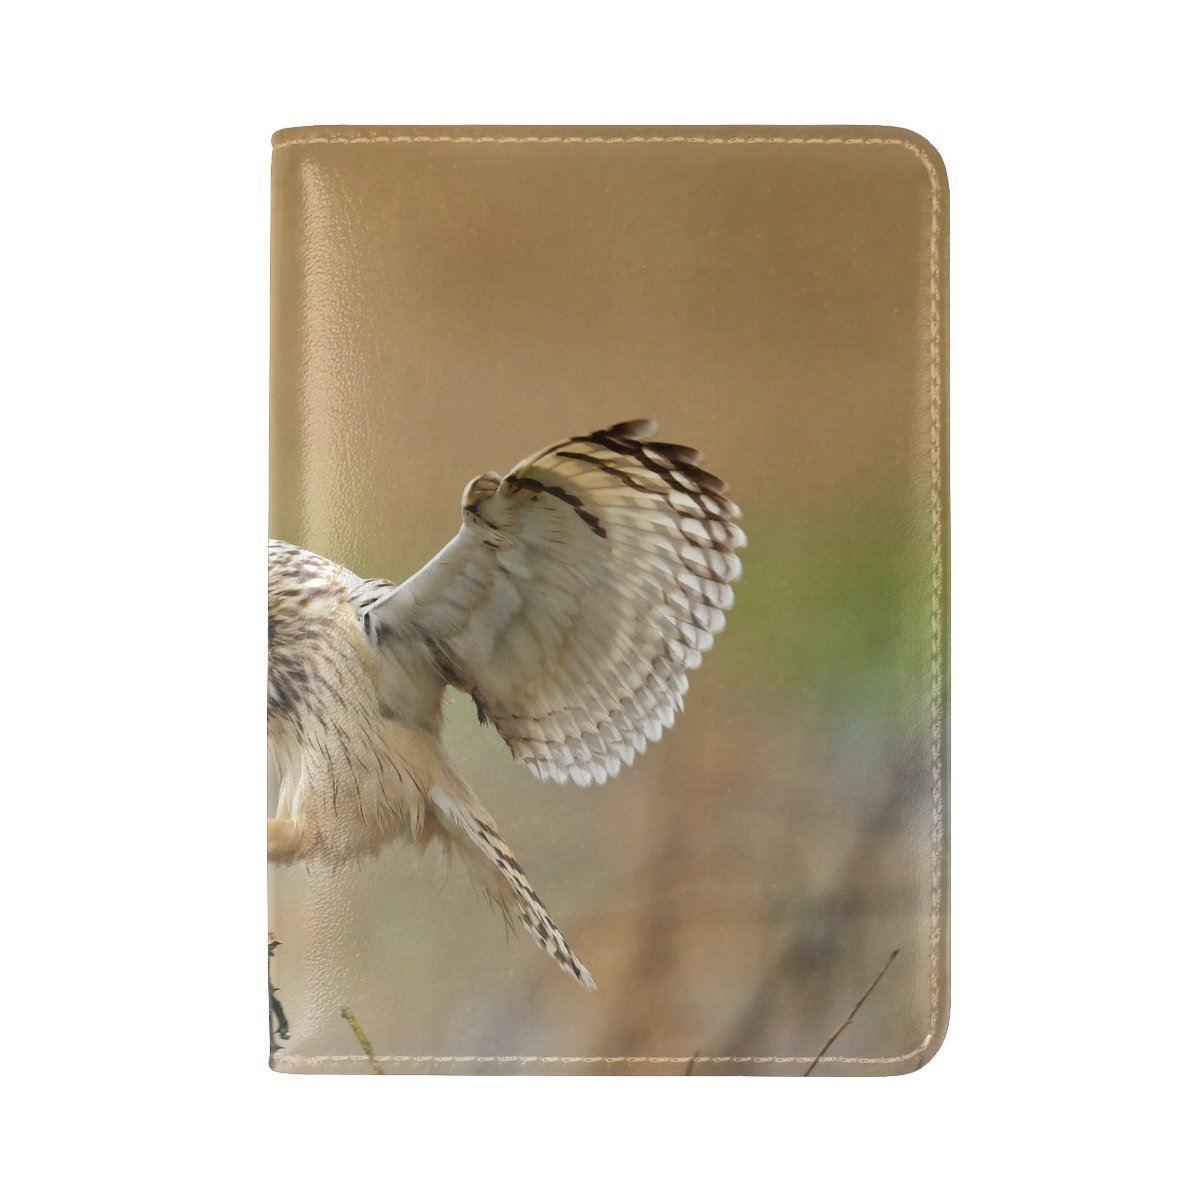 Animal Owl Short-eared Bush Bright Flying Walking Adorable Lonely Leather Passport Holder Cover Case Travel One Pocket